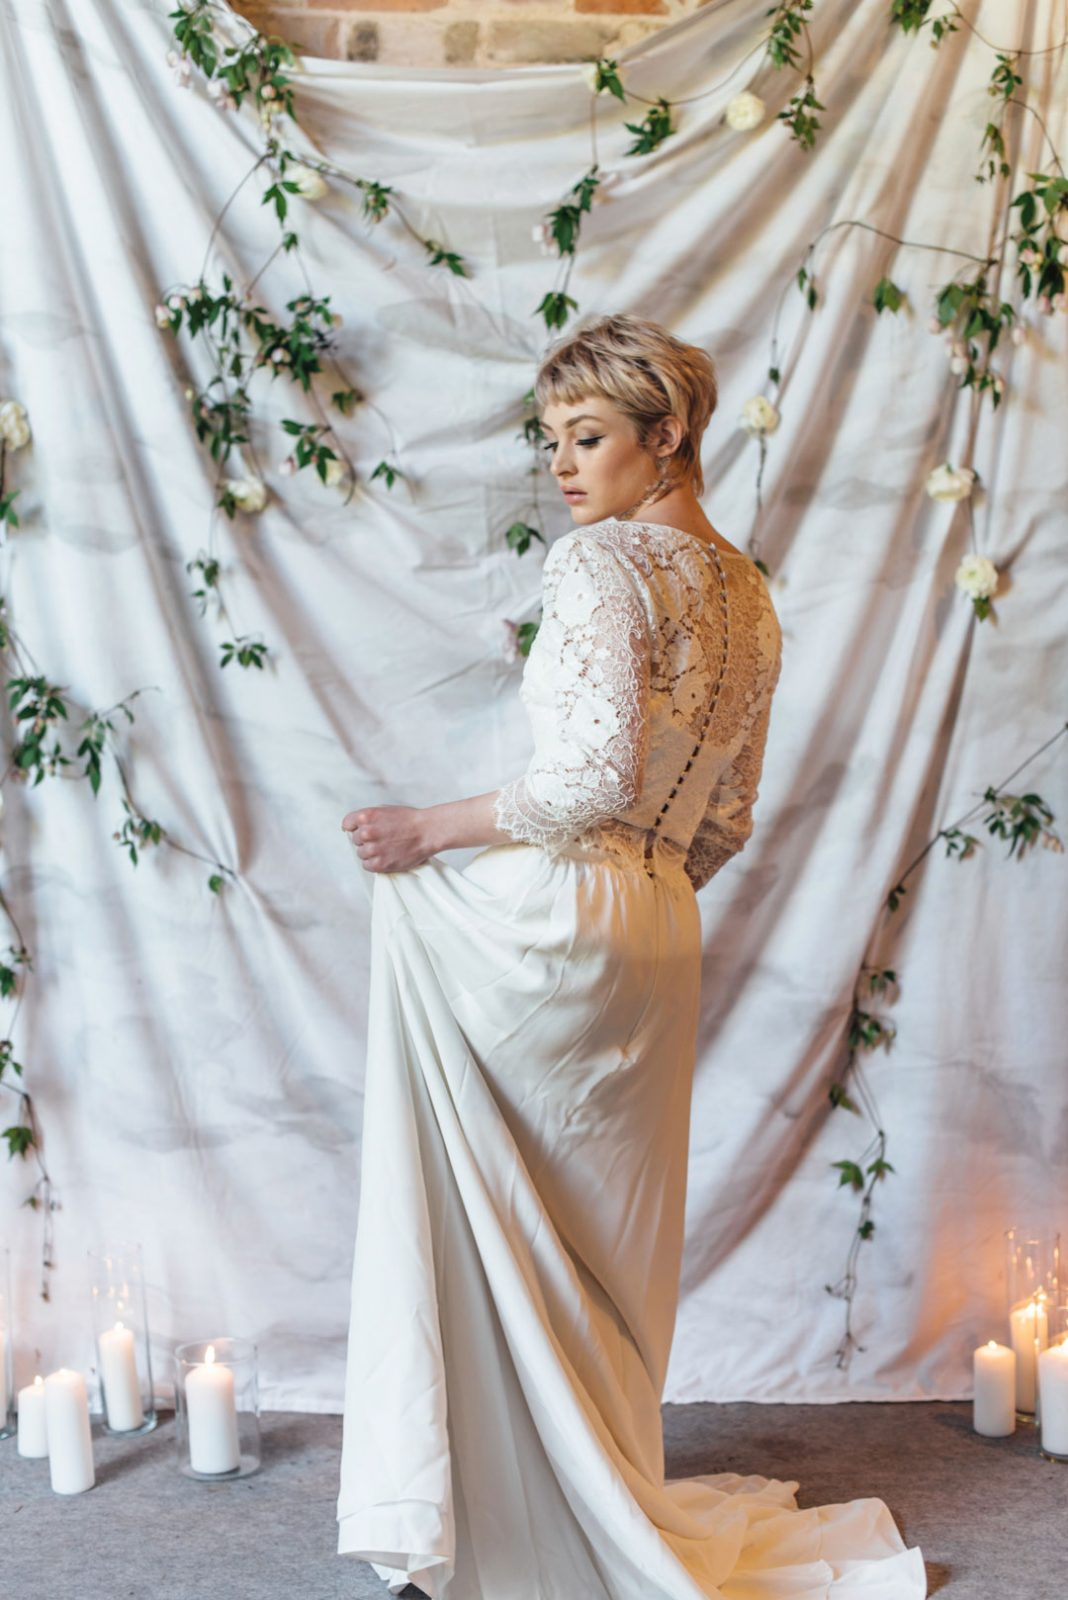 BethMoseleyPhotography_WhiteonWhite-127FINAL1080px wide-30